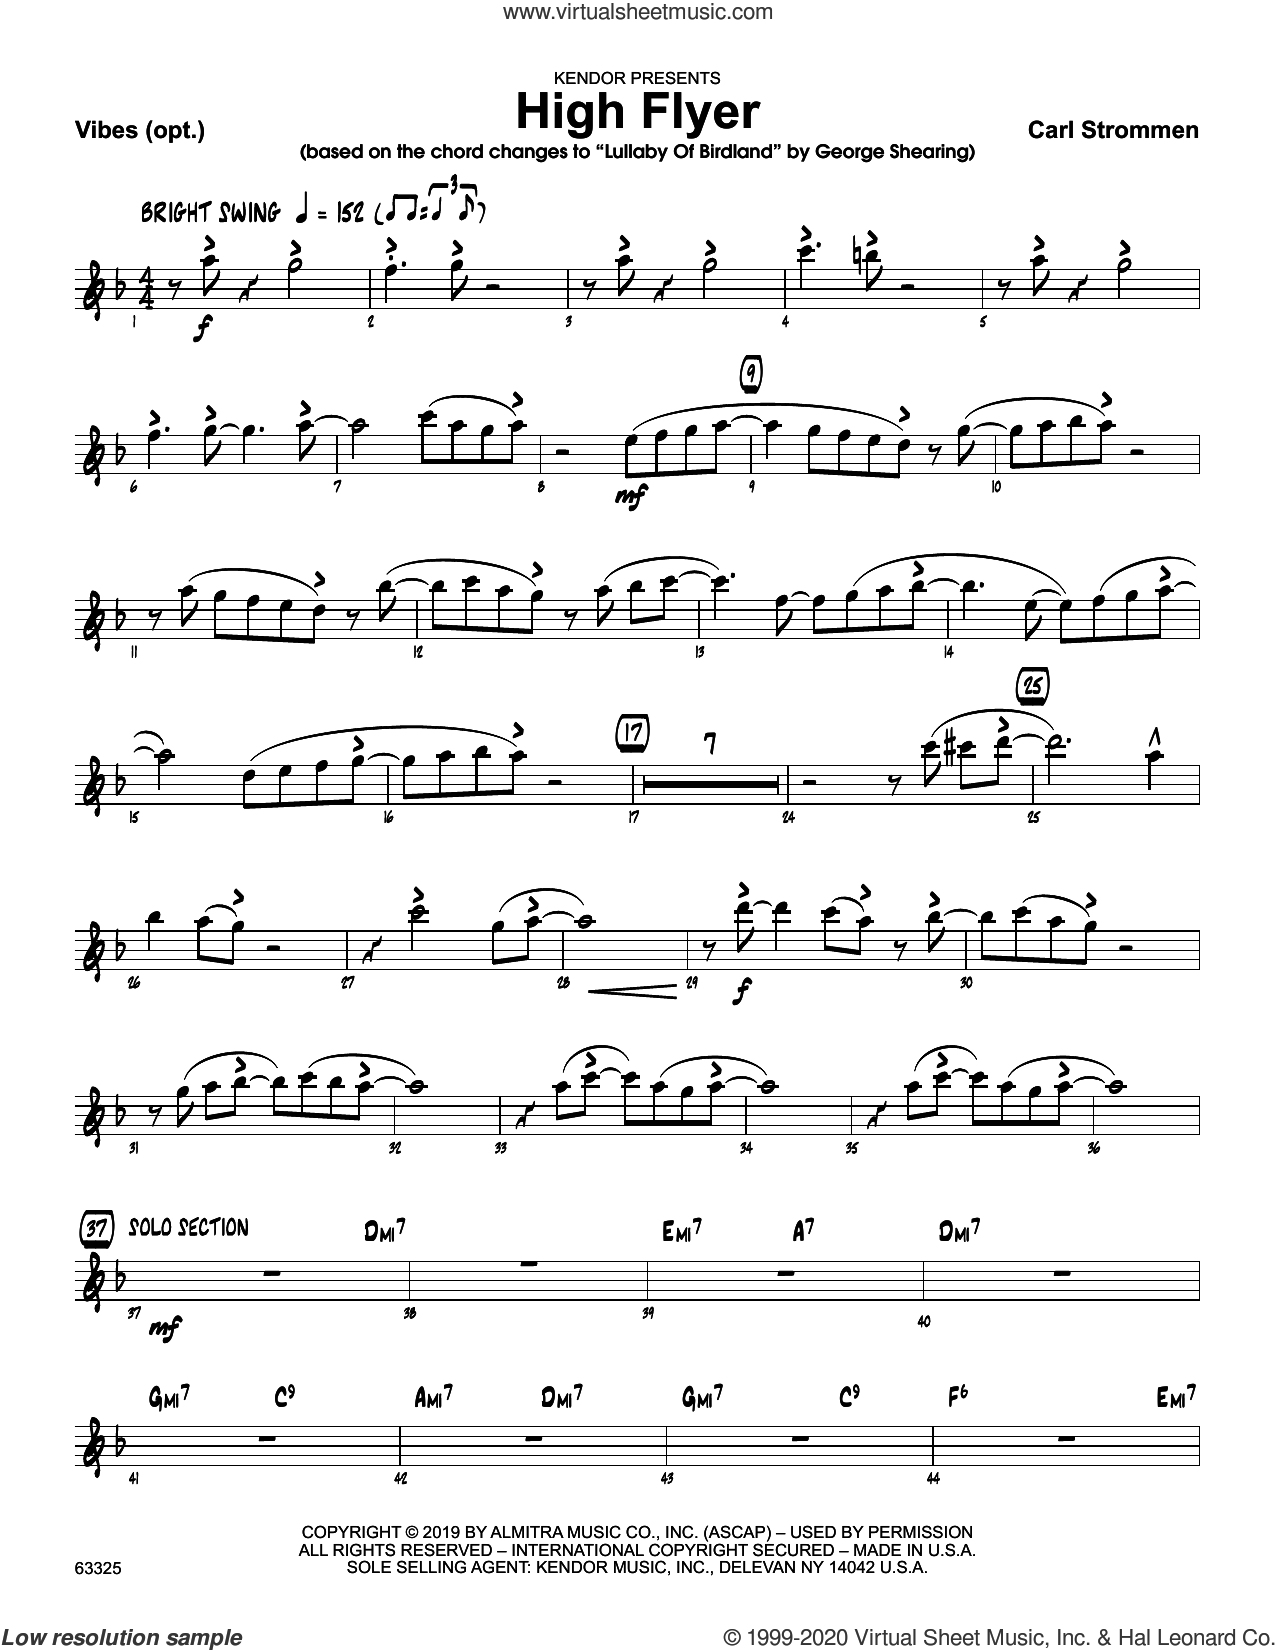 High Flyer sheet music for jazz band (vibes) by Carl Strommen, intermediate skill level